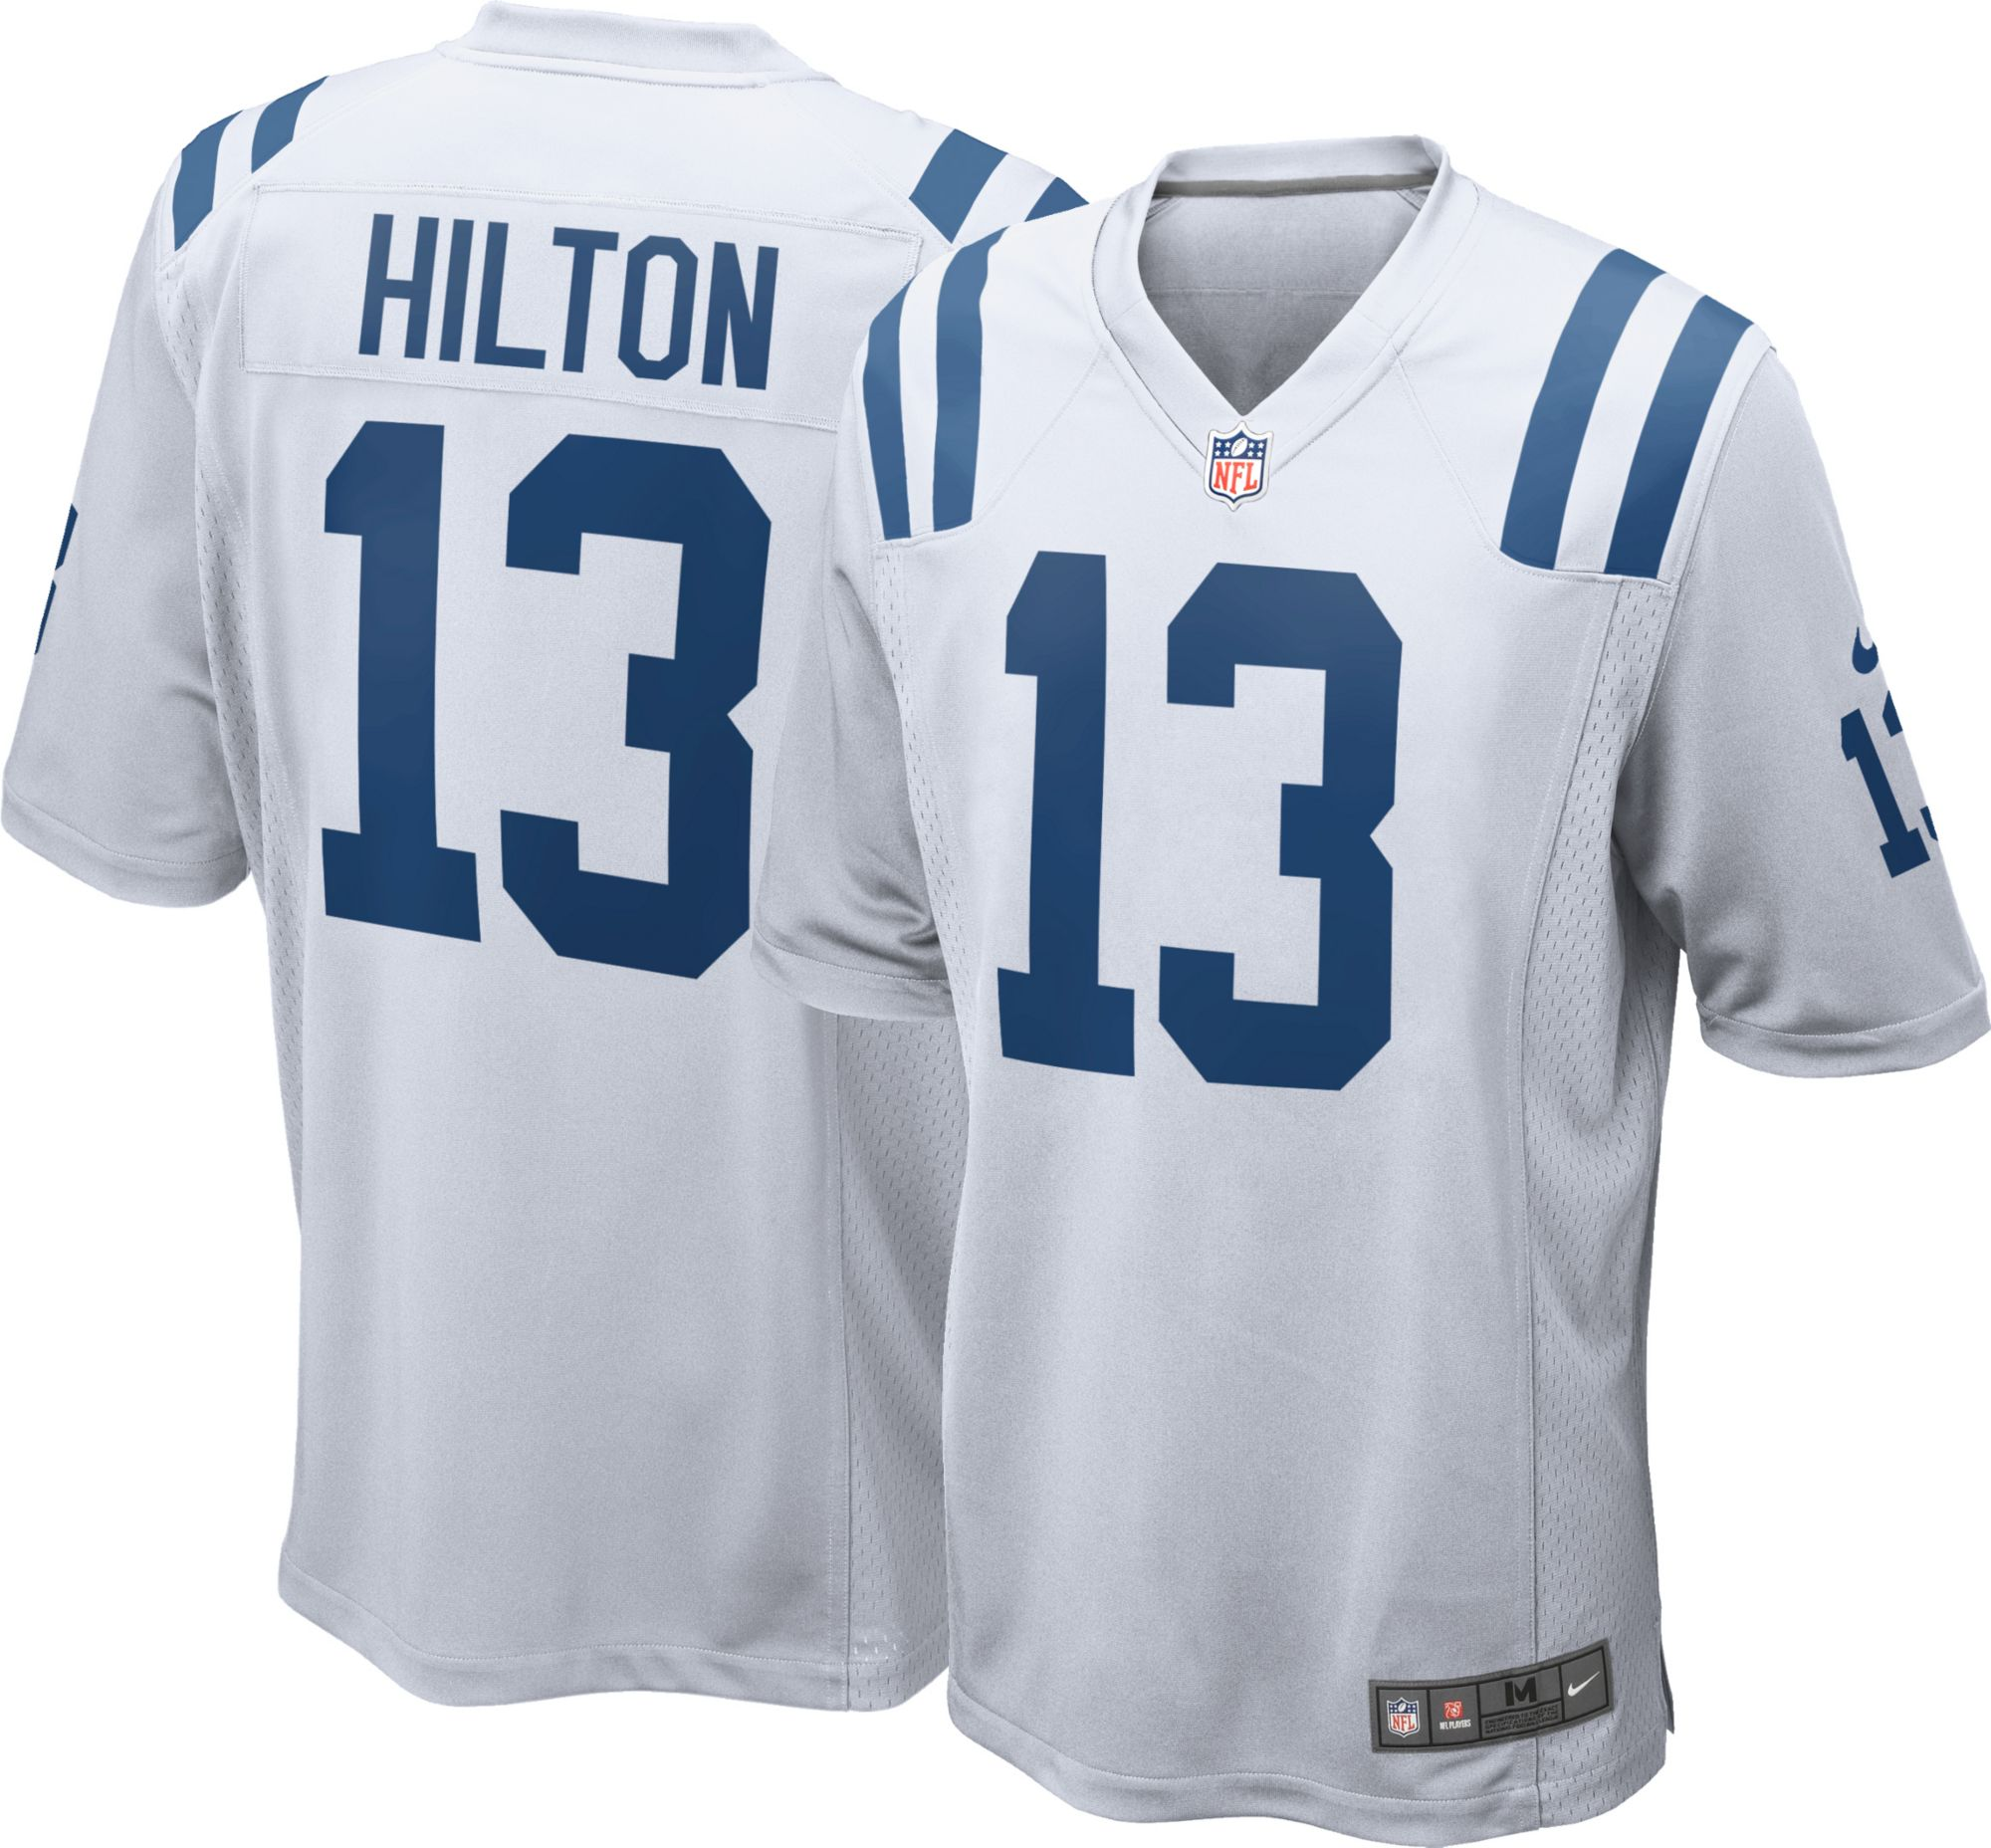 a0d920644 Nike Men s Away Game Jersey Indianapolis Colts T.Y. Hilton  13 ...